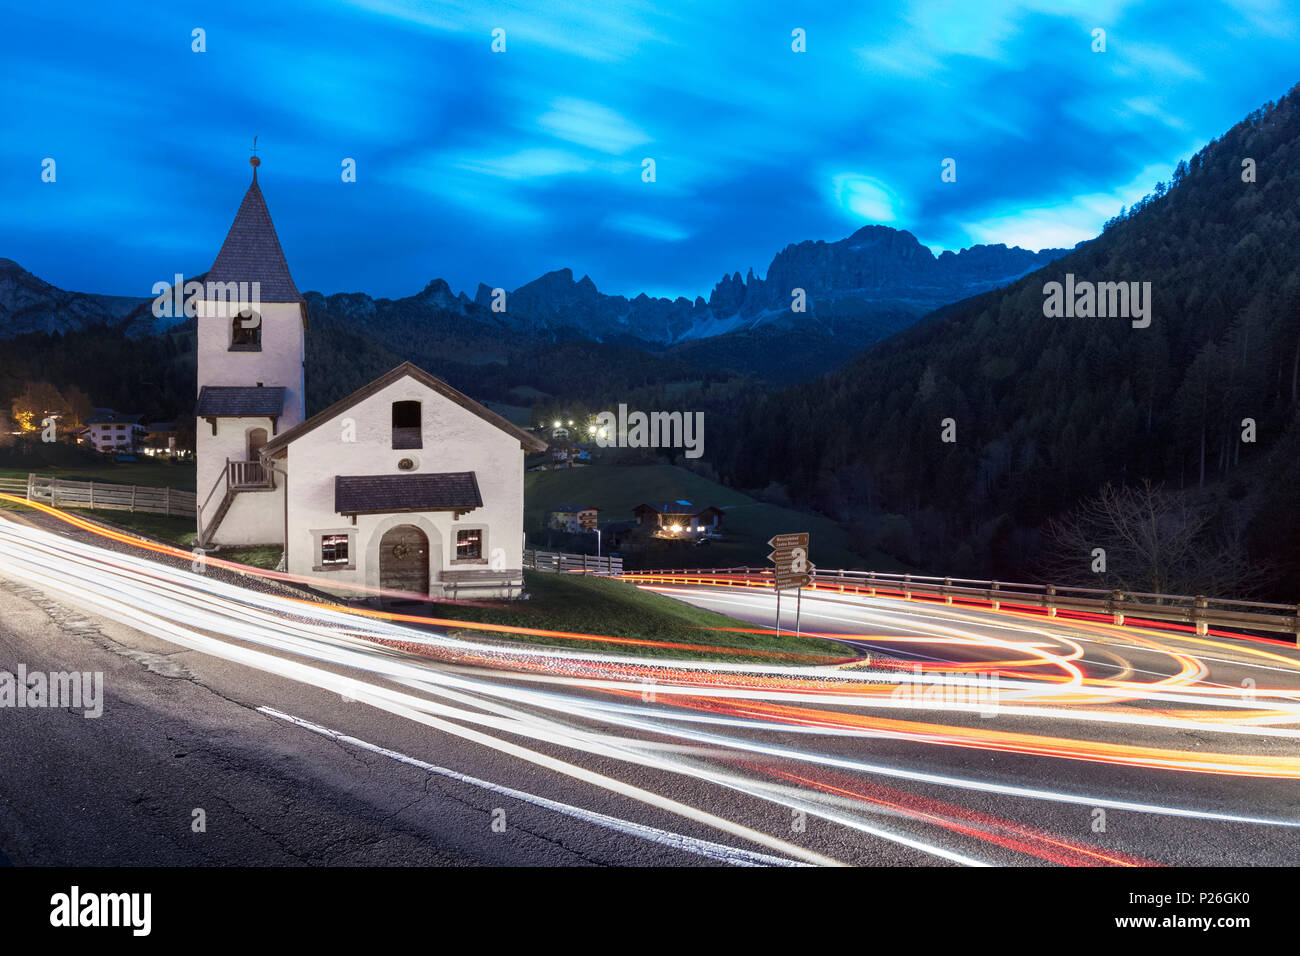 Cipriano Stock Photos & Cipriano Stock Images - Alamy